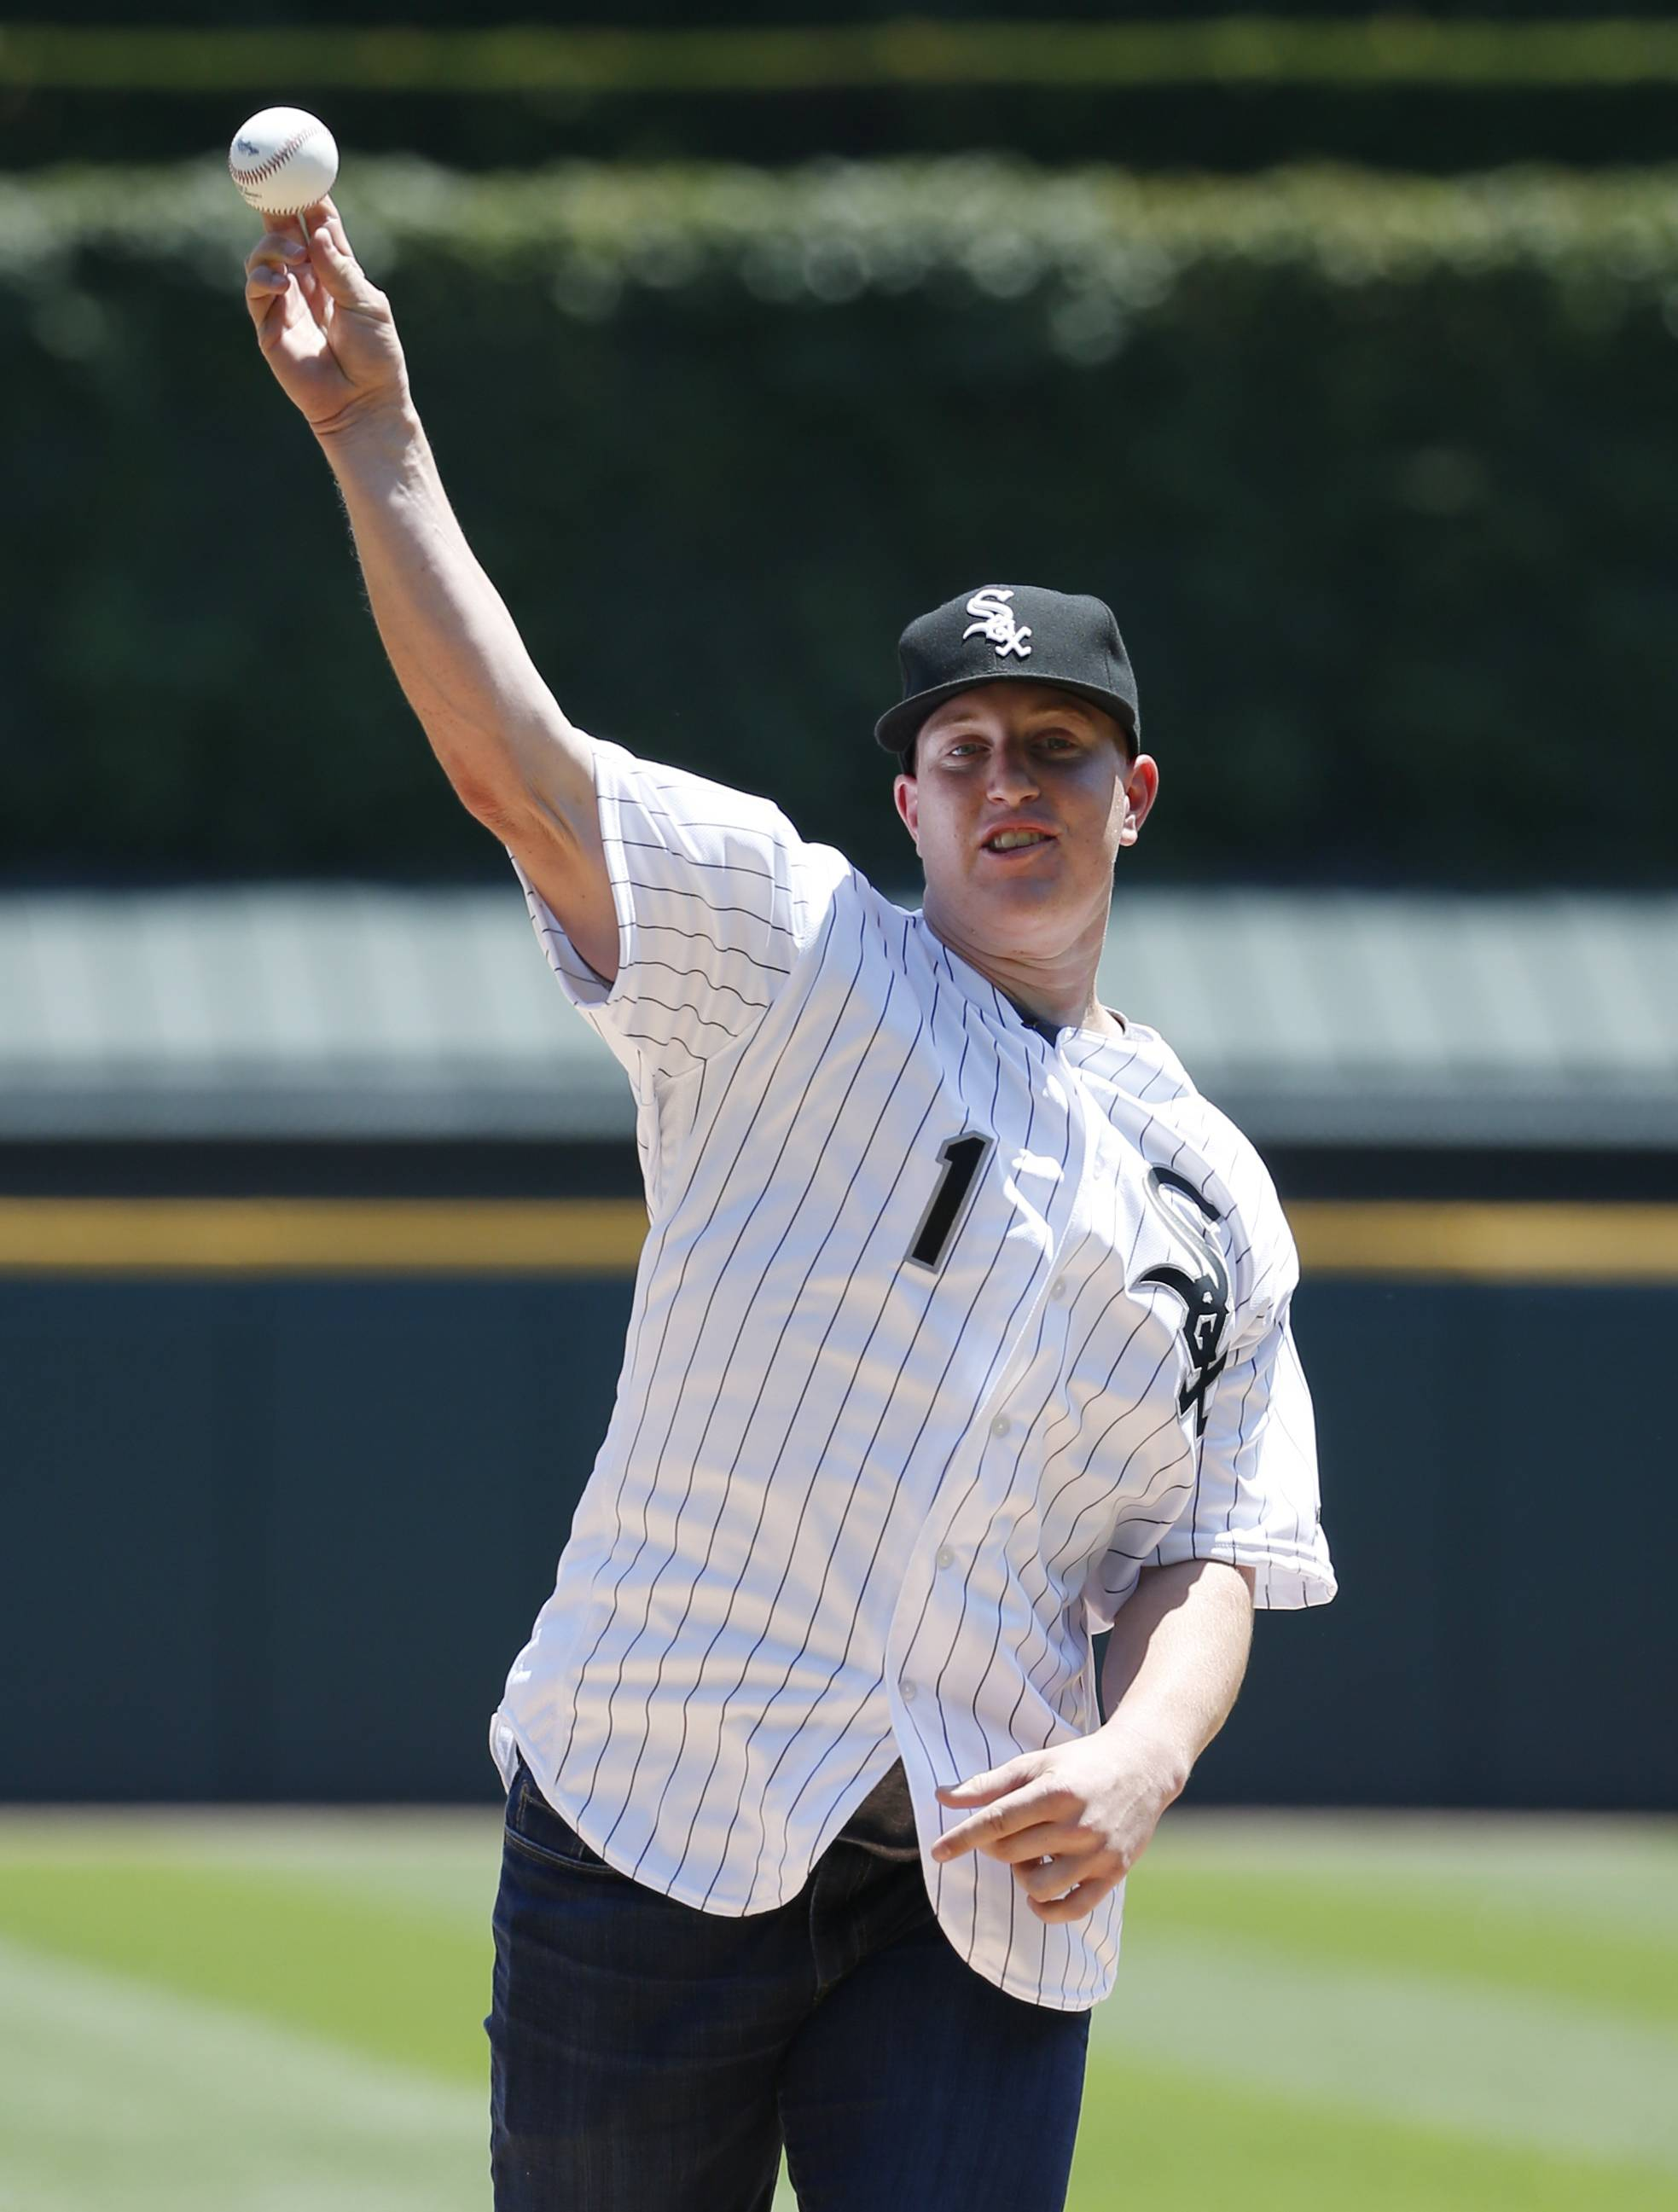 Chicago White Sox's first-round draft pick Zack Collins throws out the ceremonial first pitch before Saturday's game against the Toronto Blue Jays in Chicago. Collins signed his minor league contract Friday, and is set to report to the Arizona League White Sox in July.